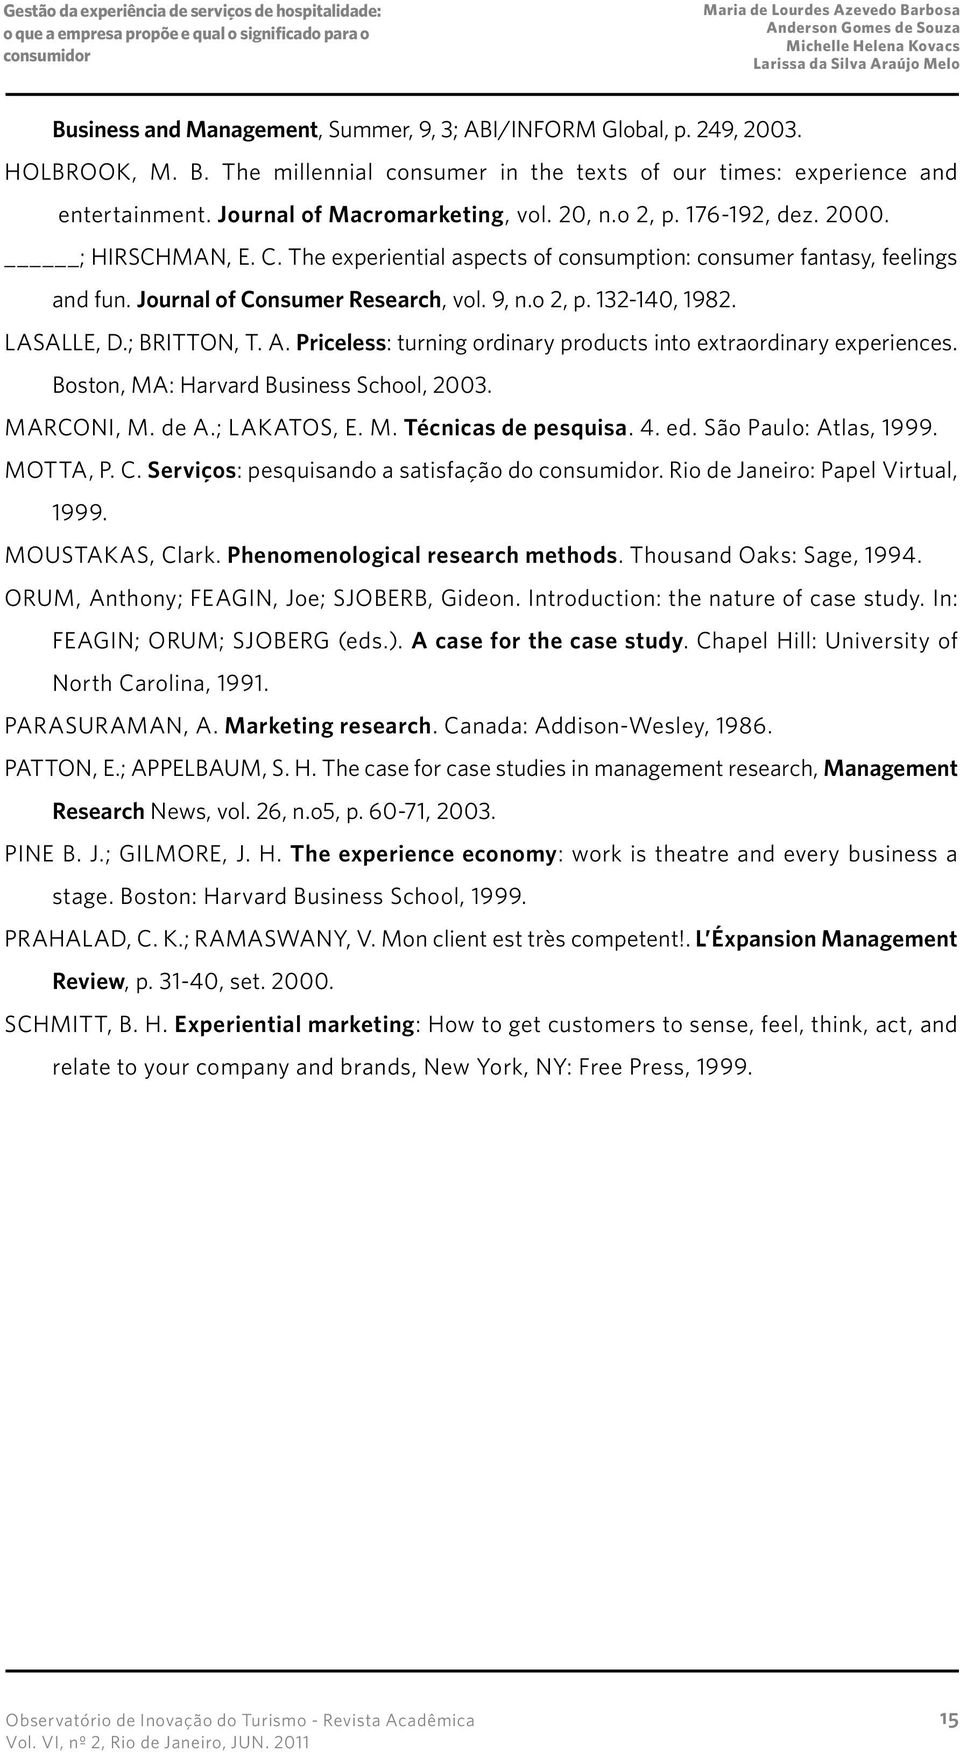 LASALLE, D.; BRITTON, T. A. Priceless: turning ordinary products into extraordinary experiences. Boston, MA: Harvard Business School, 2003. MARCONI, M. de A.; LAKATOS, E. M. Técnicas de pesquisa. 4.